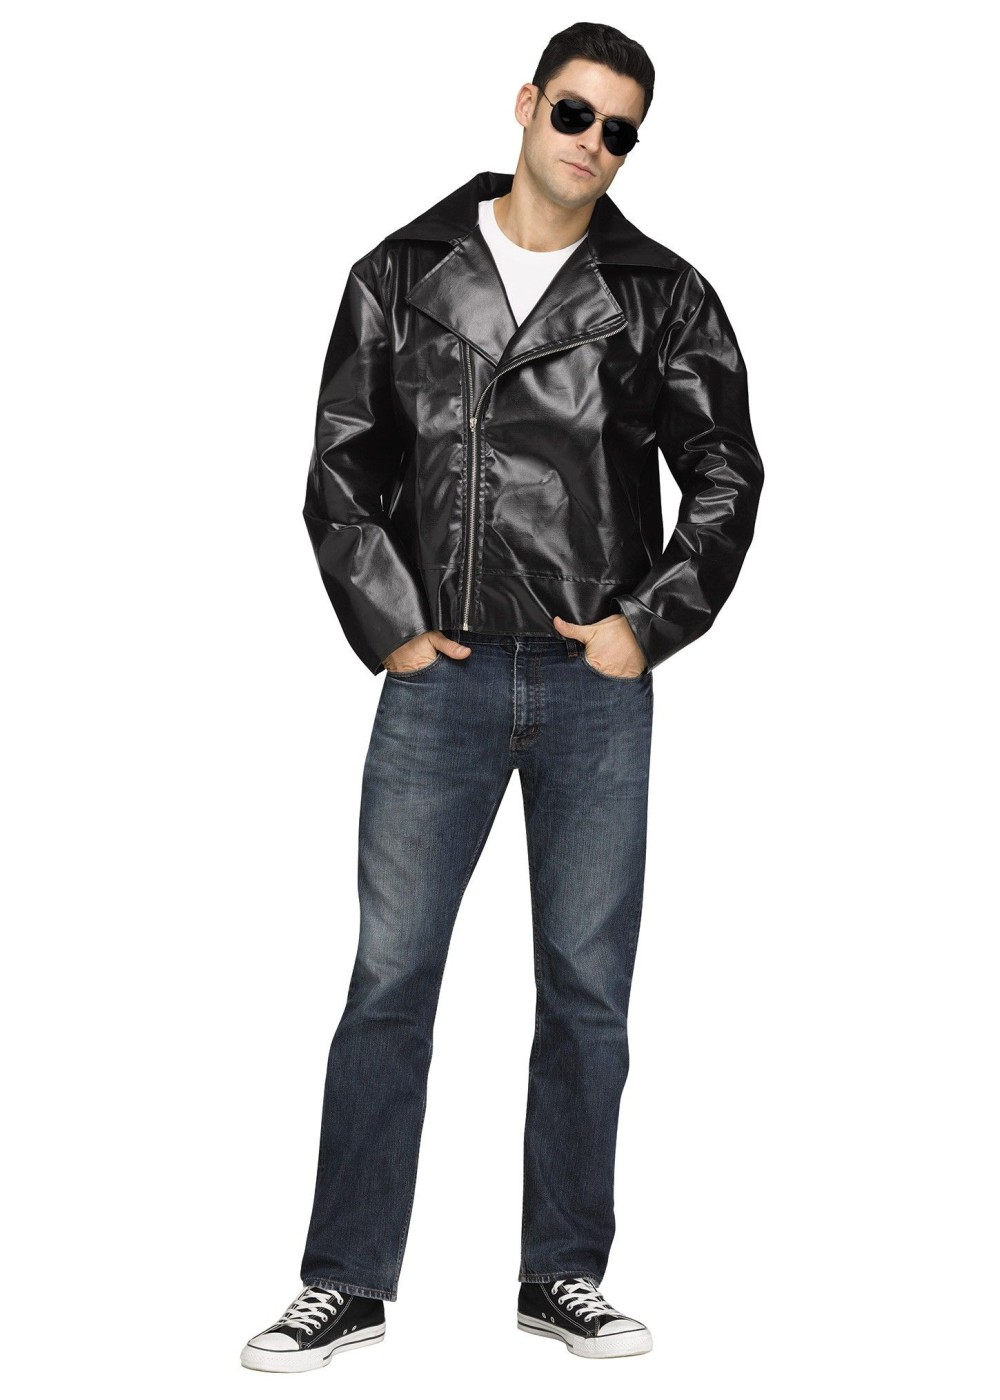 S Biker Jacket Men Costume on costume jewelry of the 1950s